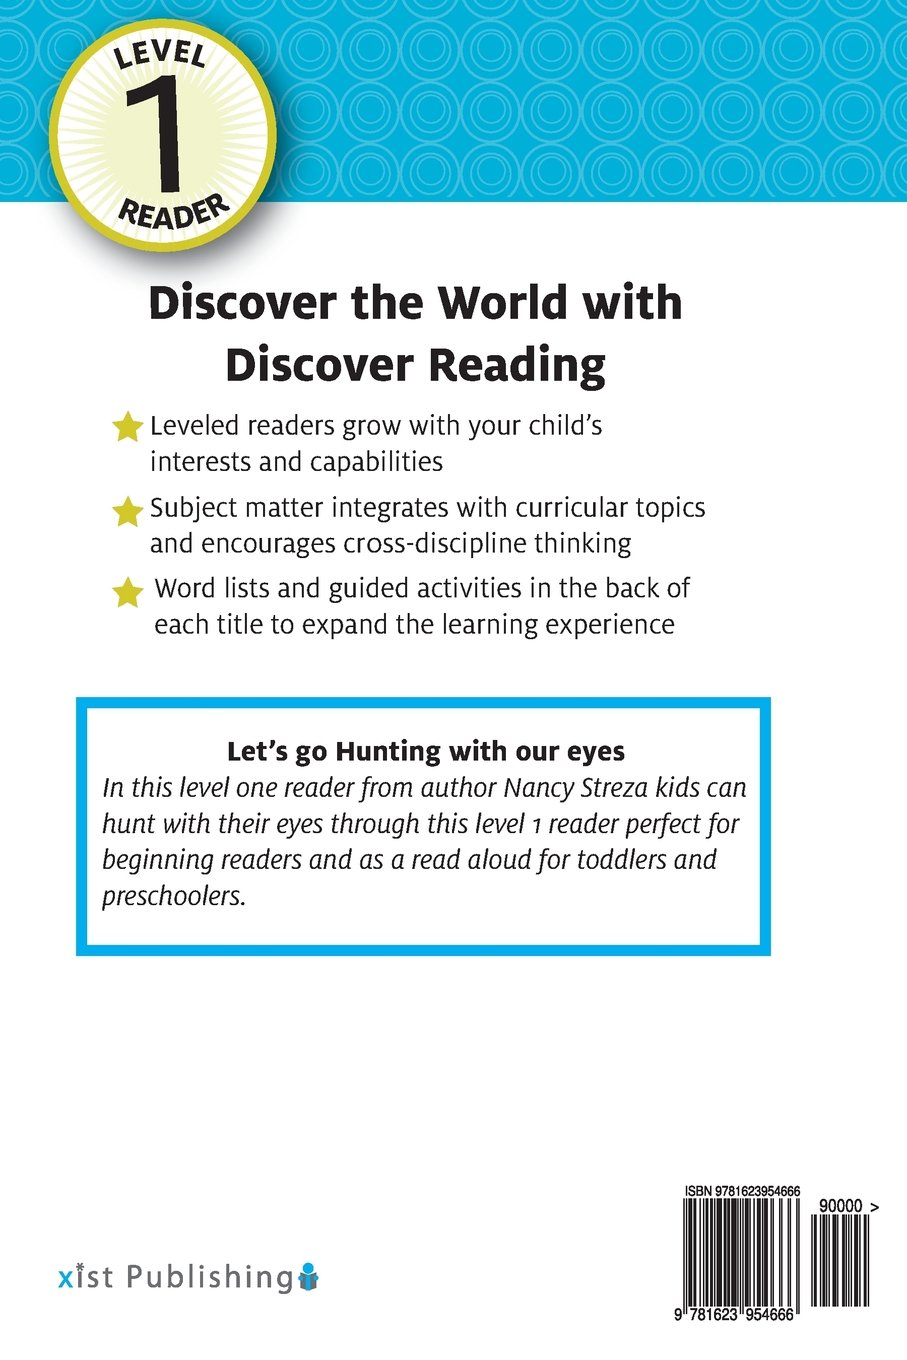 Lets go Hunting (With our Eyes): Level 1 Reader (Discover Reading)